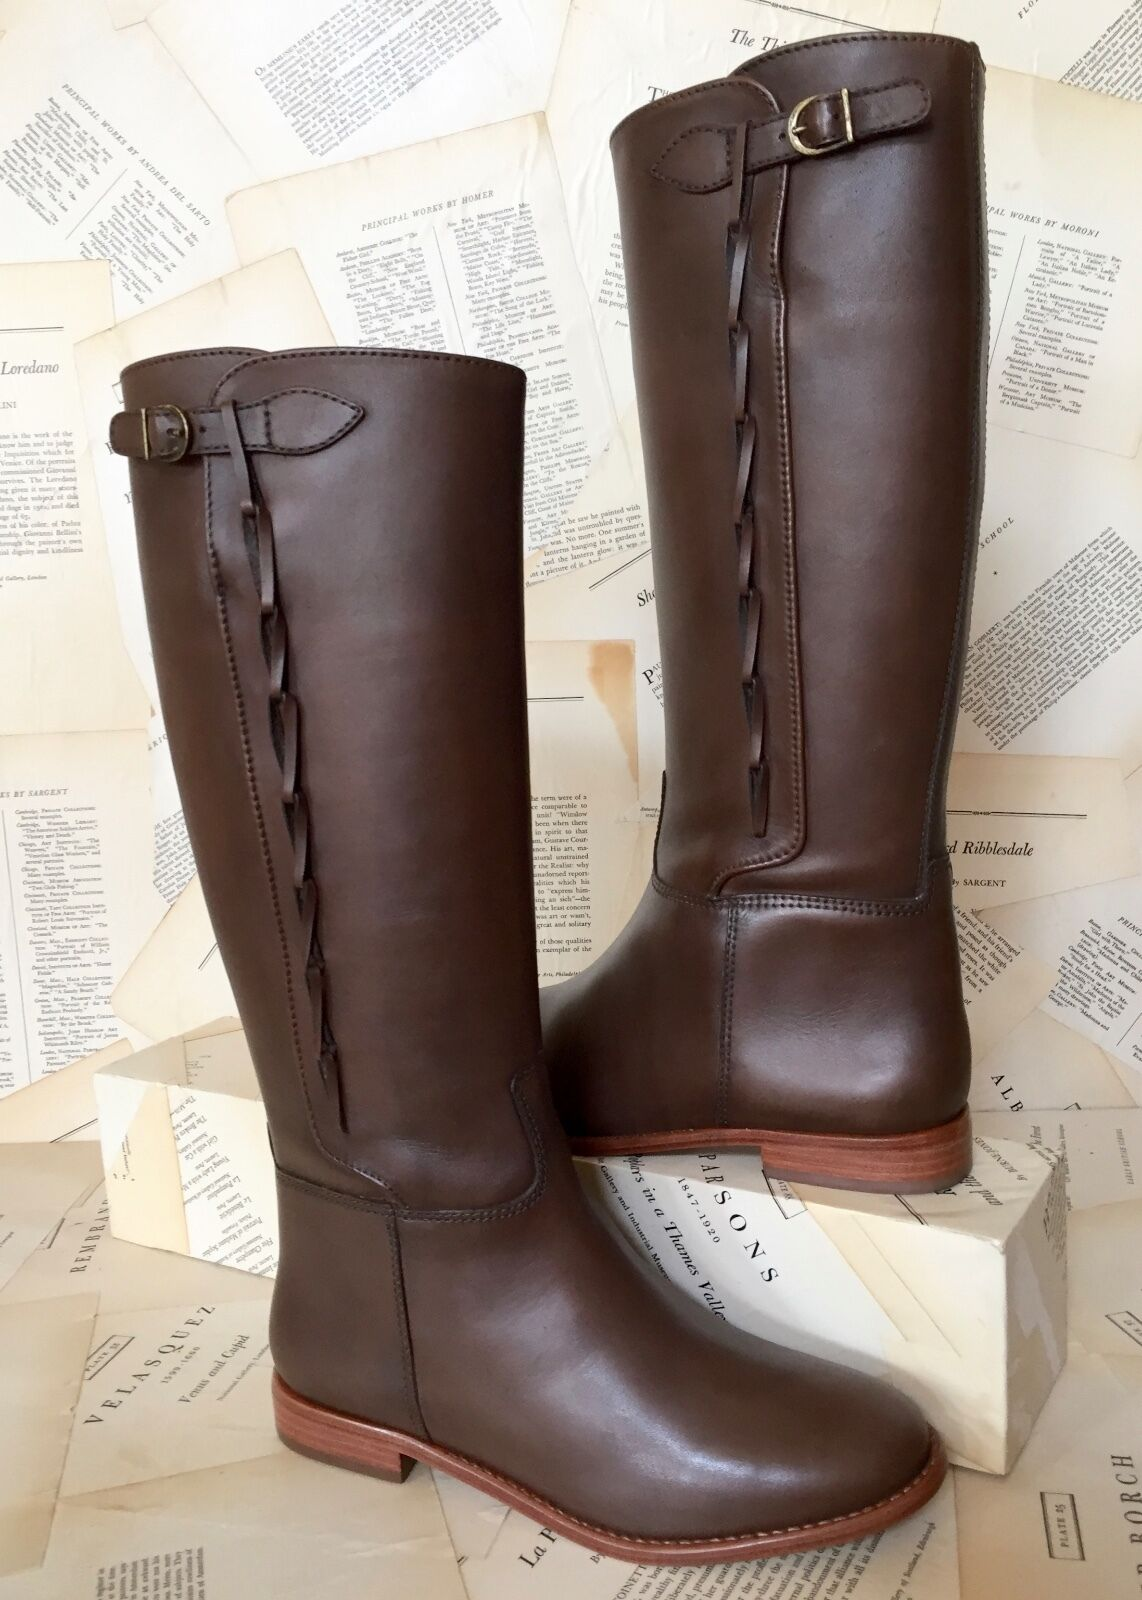 NIB Candela Brown Side Buckle Braided Bought at Anthropologie Riding Boots 8.5